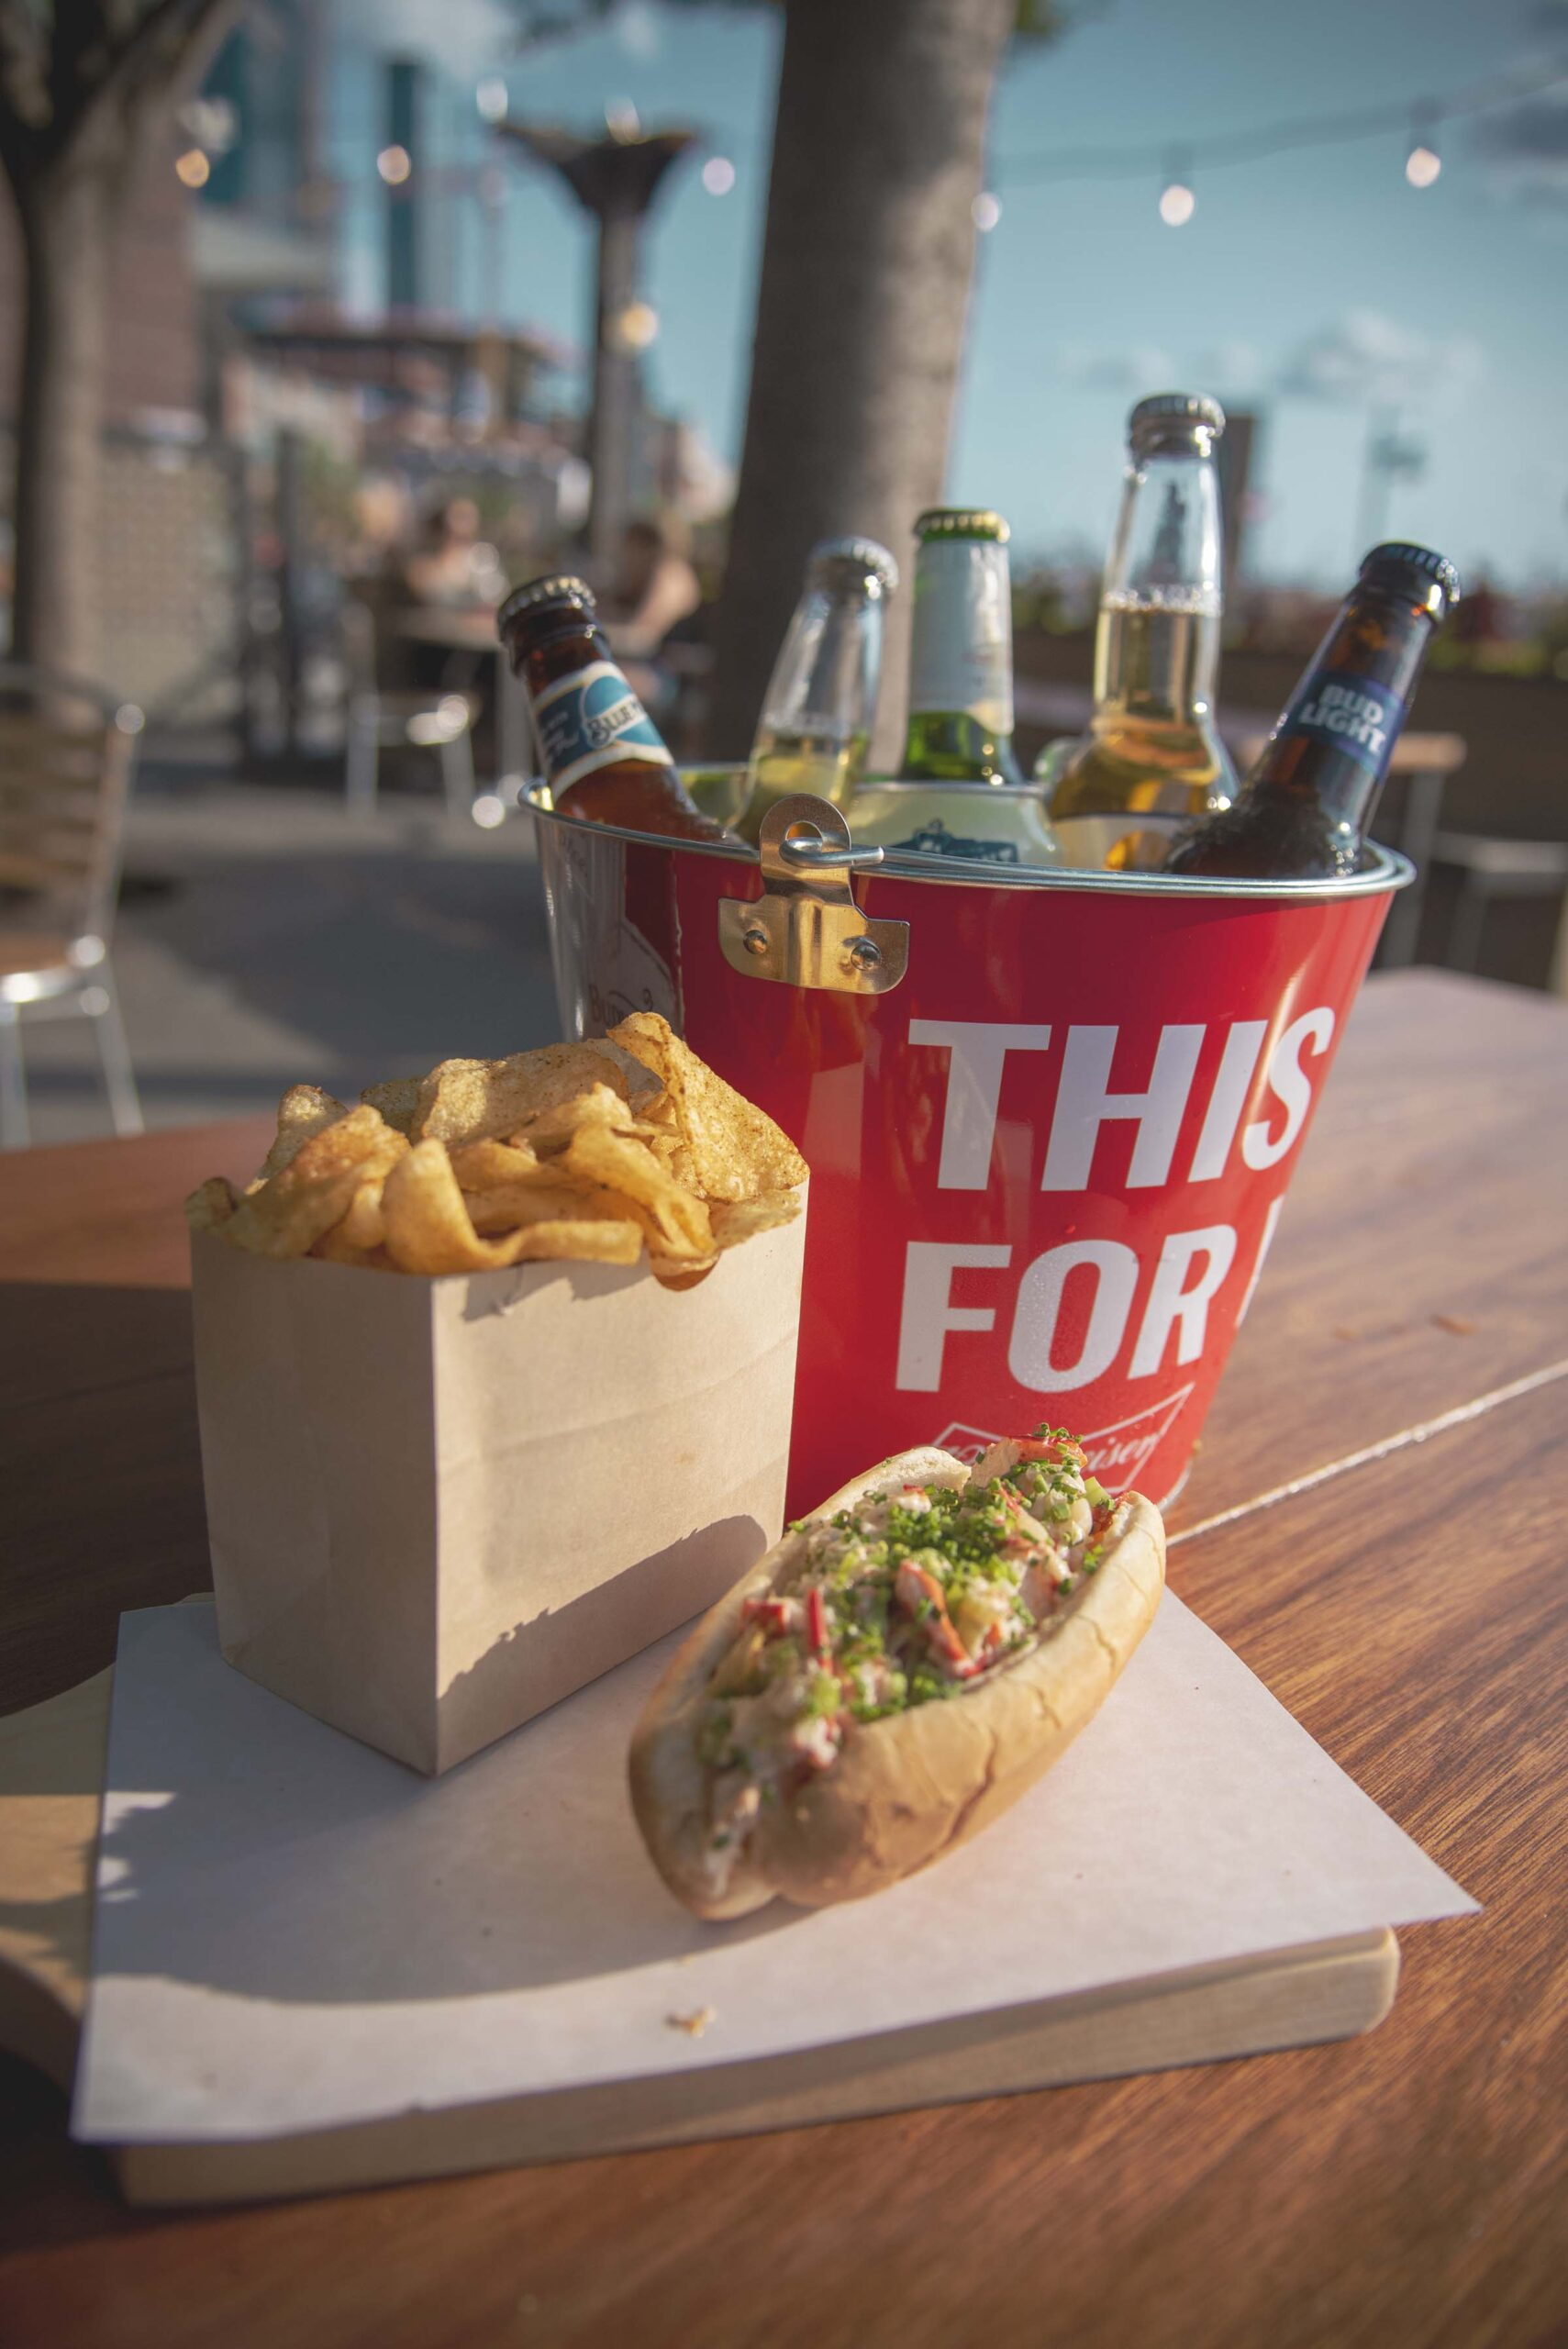 A lobster roll and a bag of chips